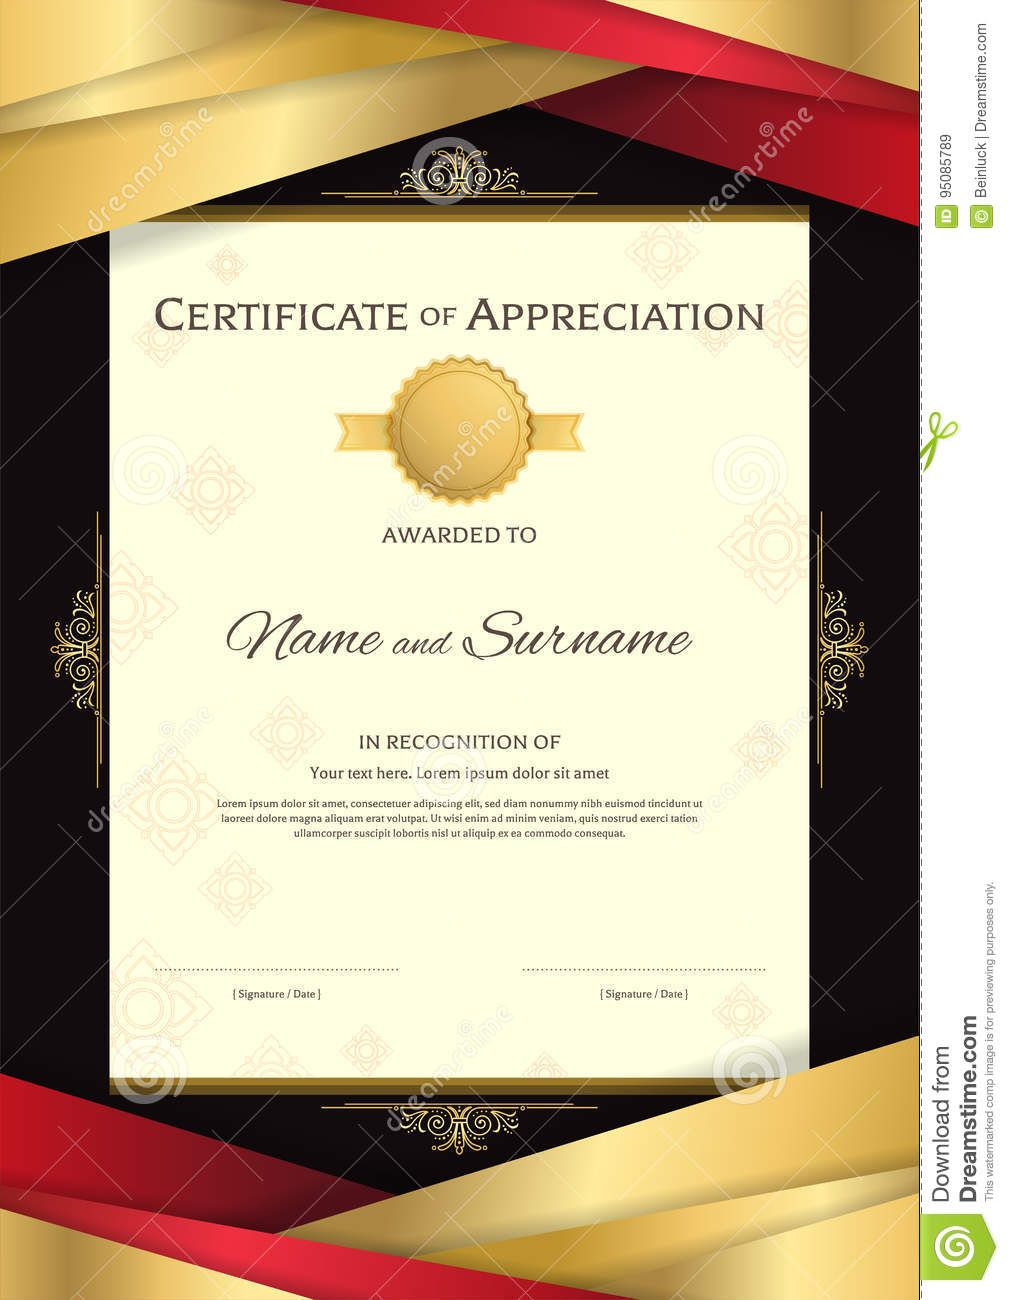 Portrait luxury certificate template with elegant golden border portrait luxury certificate template with elegant golden border stock vector image 95085789 xflitez Image collections